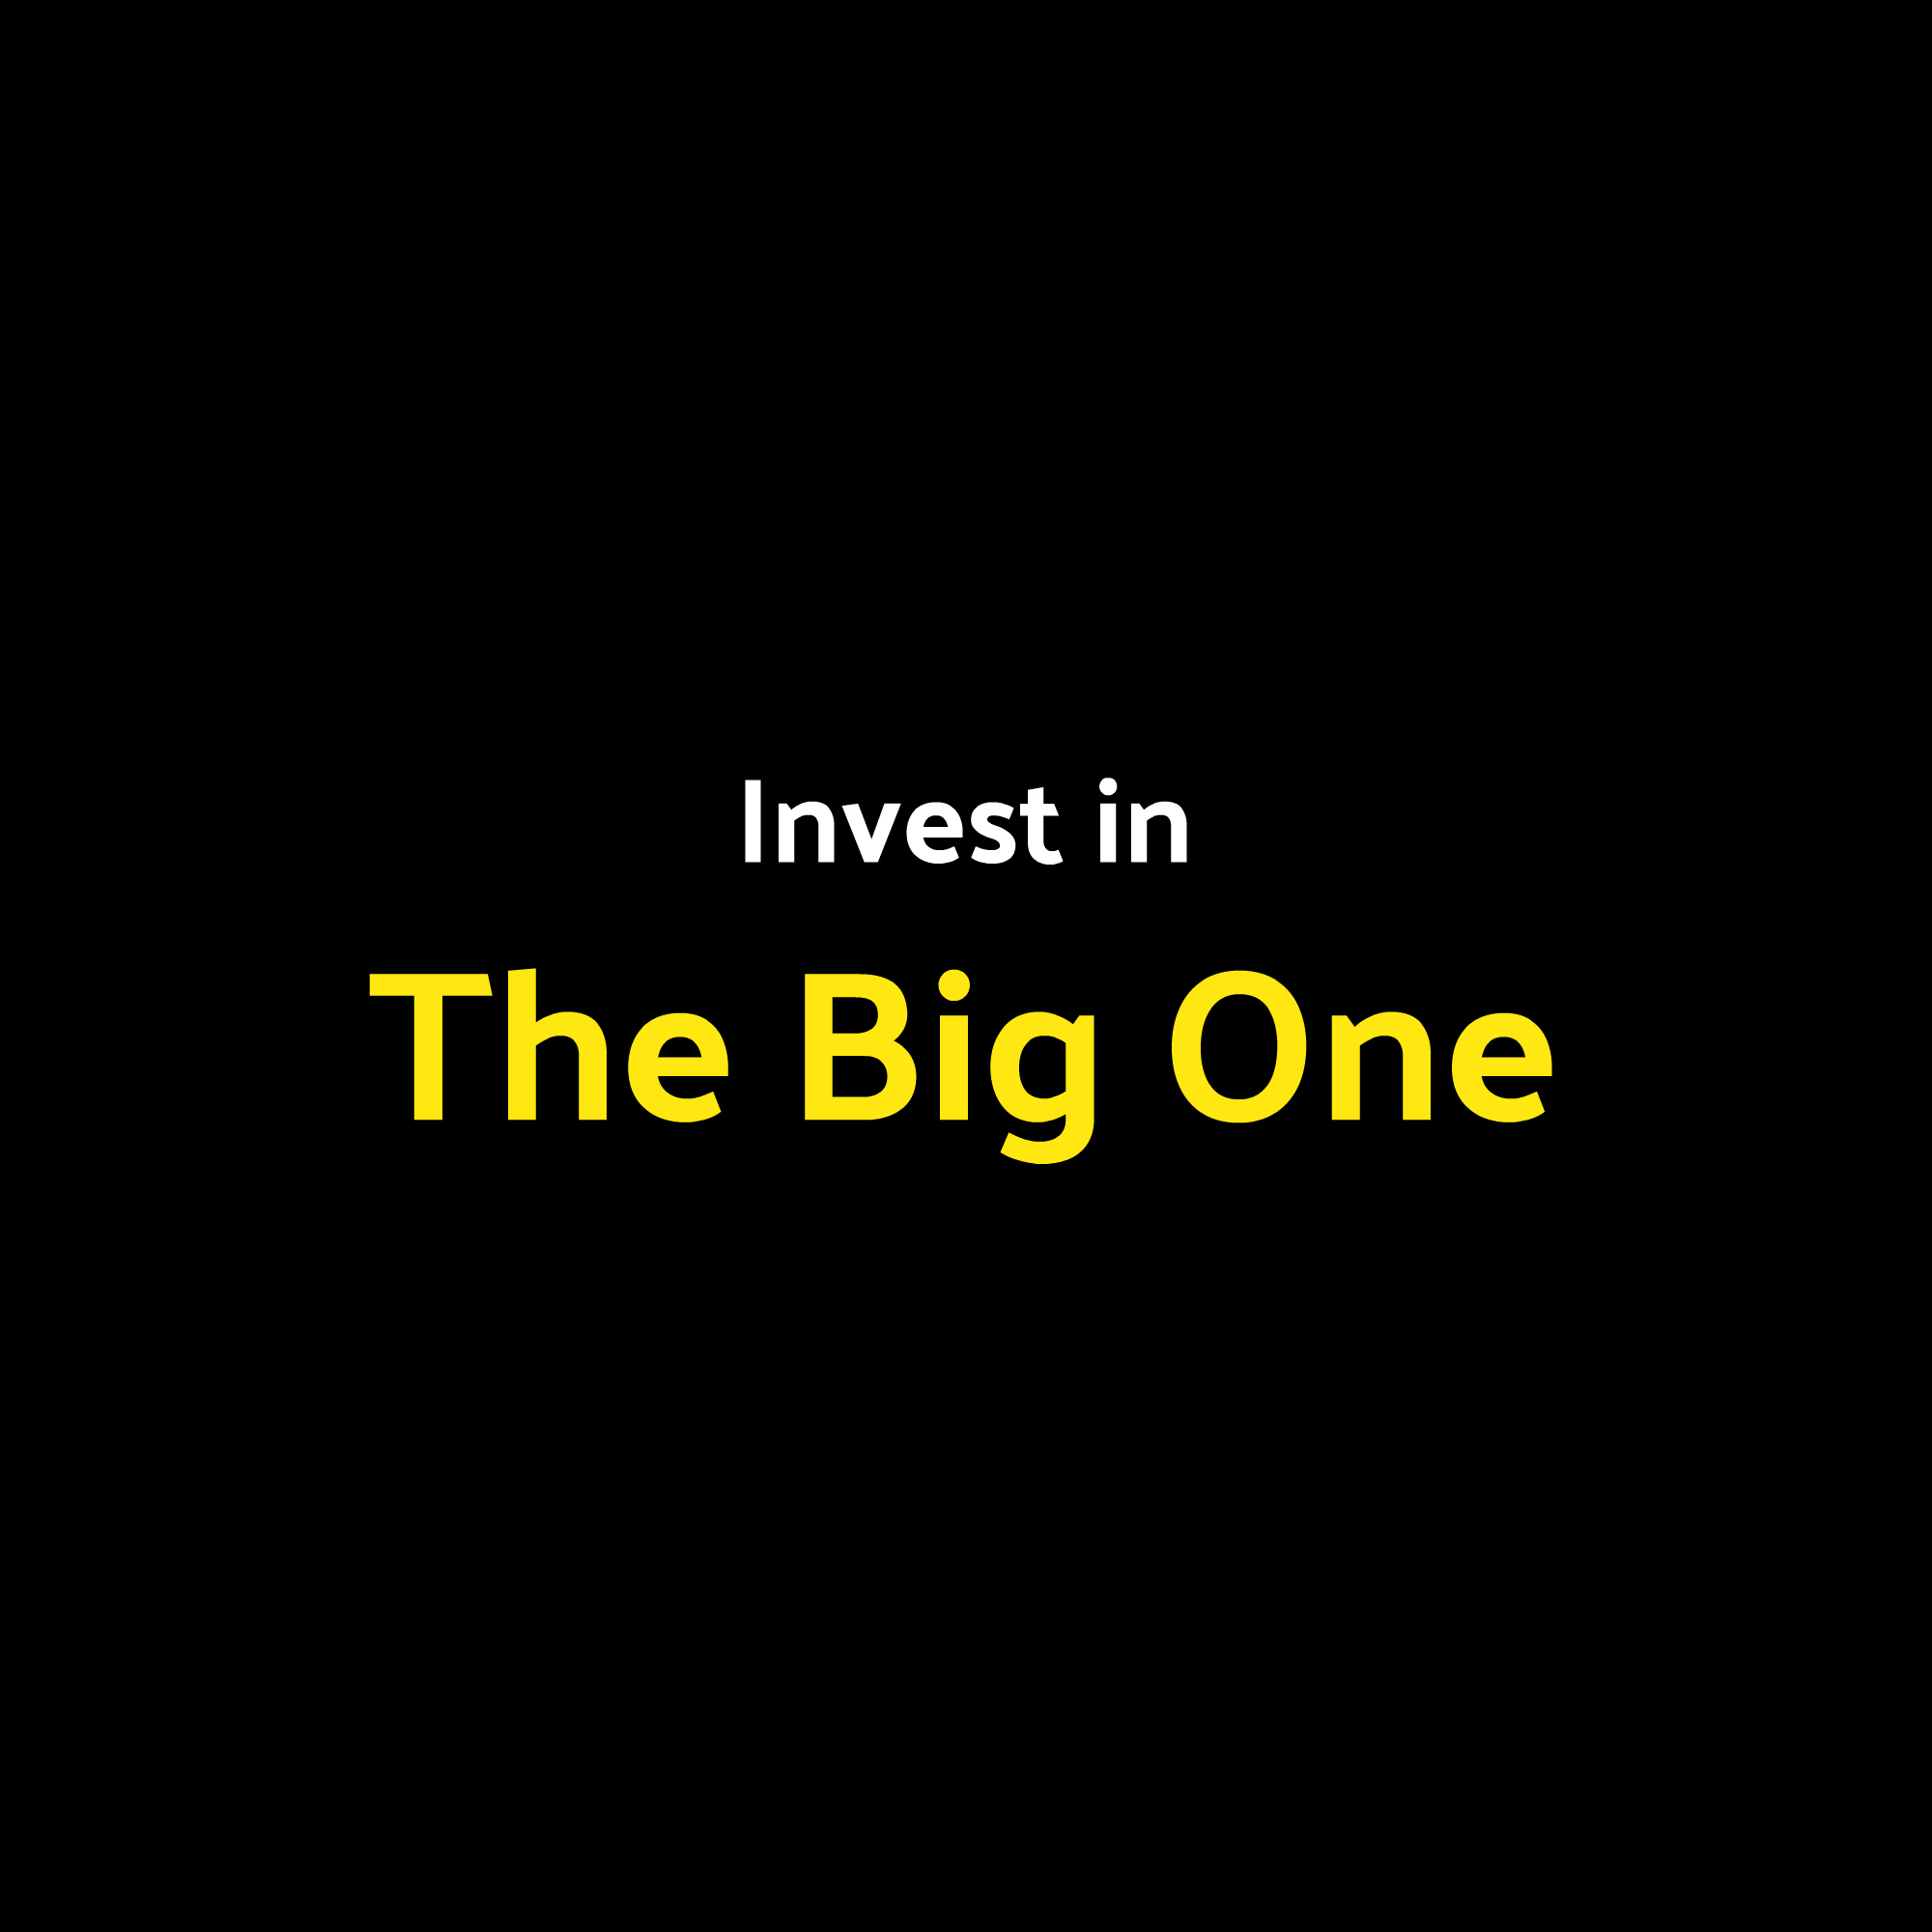 Invest in The Big One.jpg